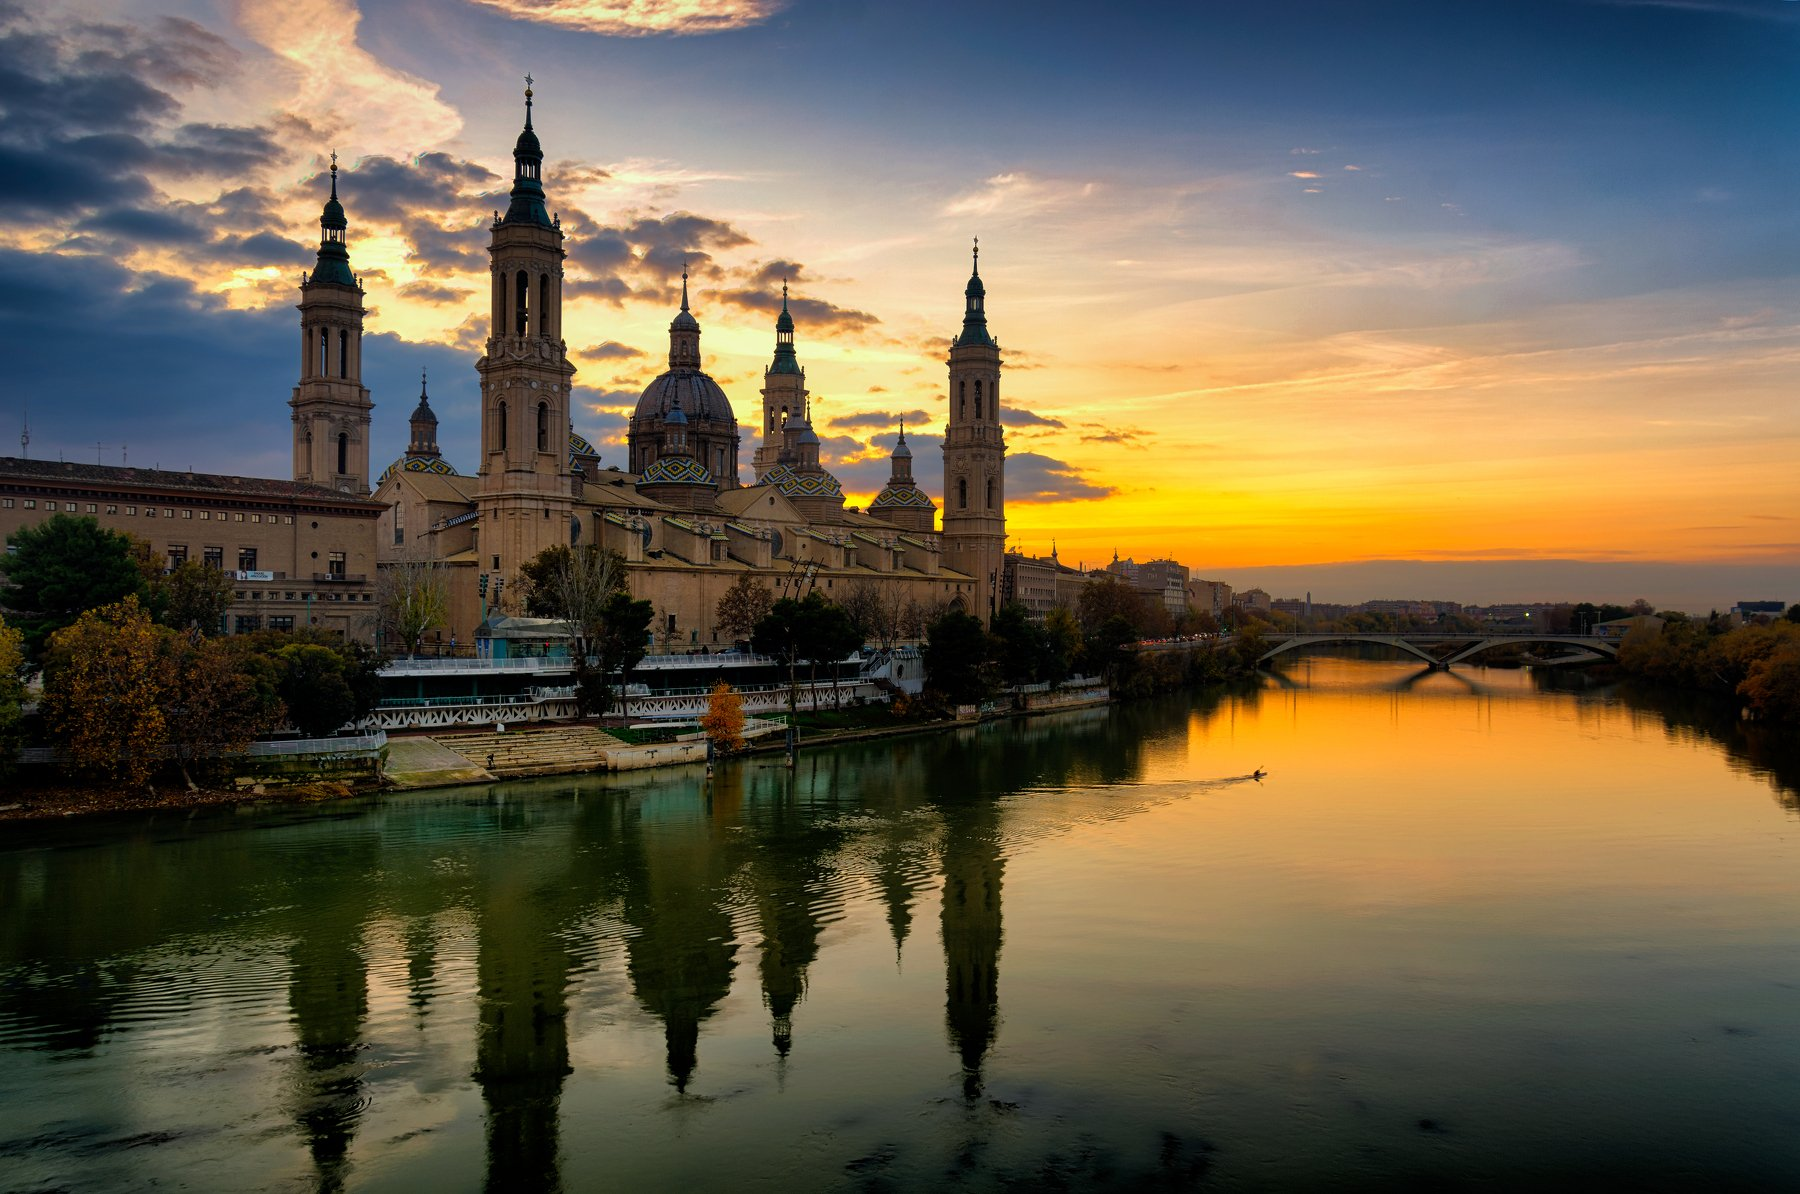 cathedral-basilica of our lady of the pillar, zaragoza, spain, ebro river, Виктор